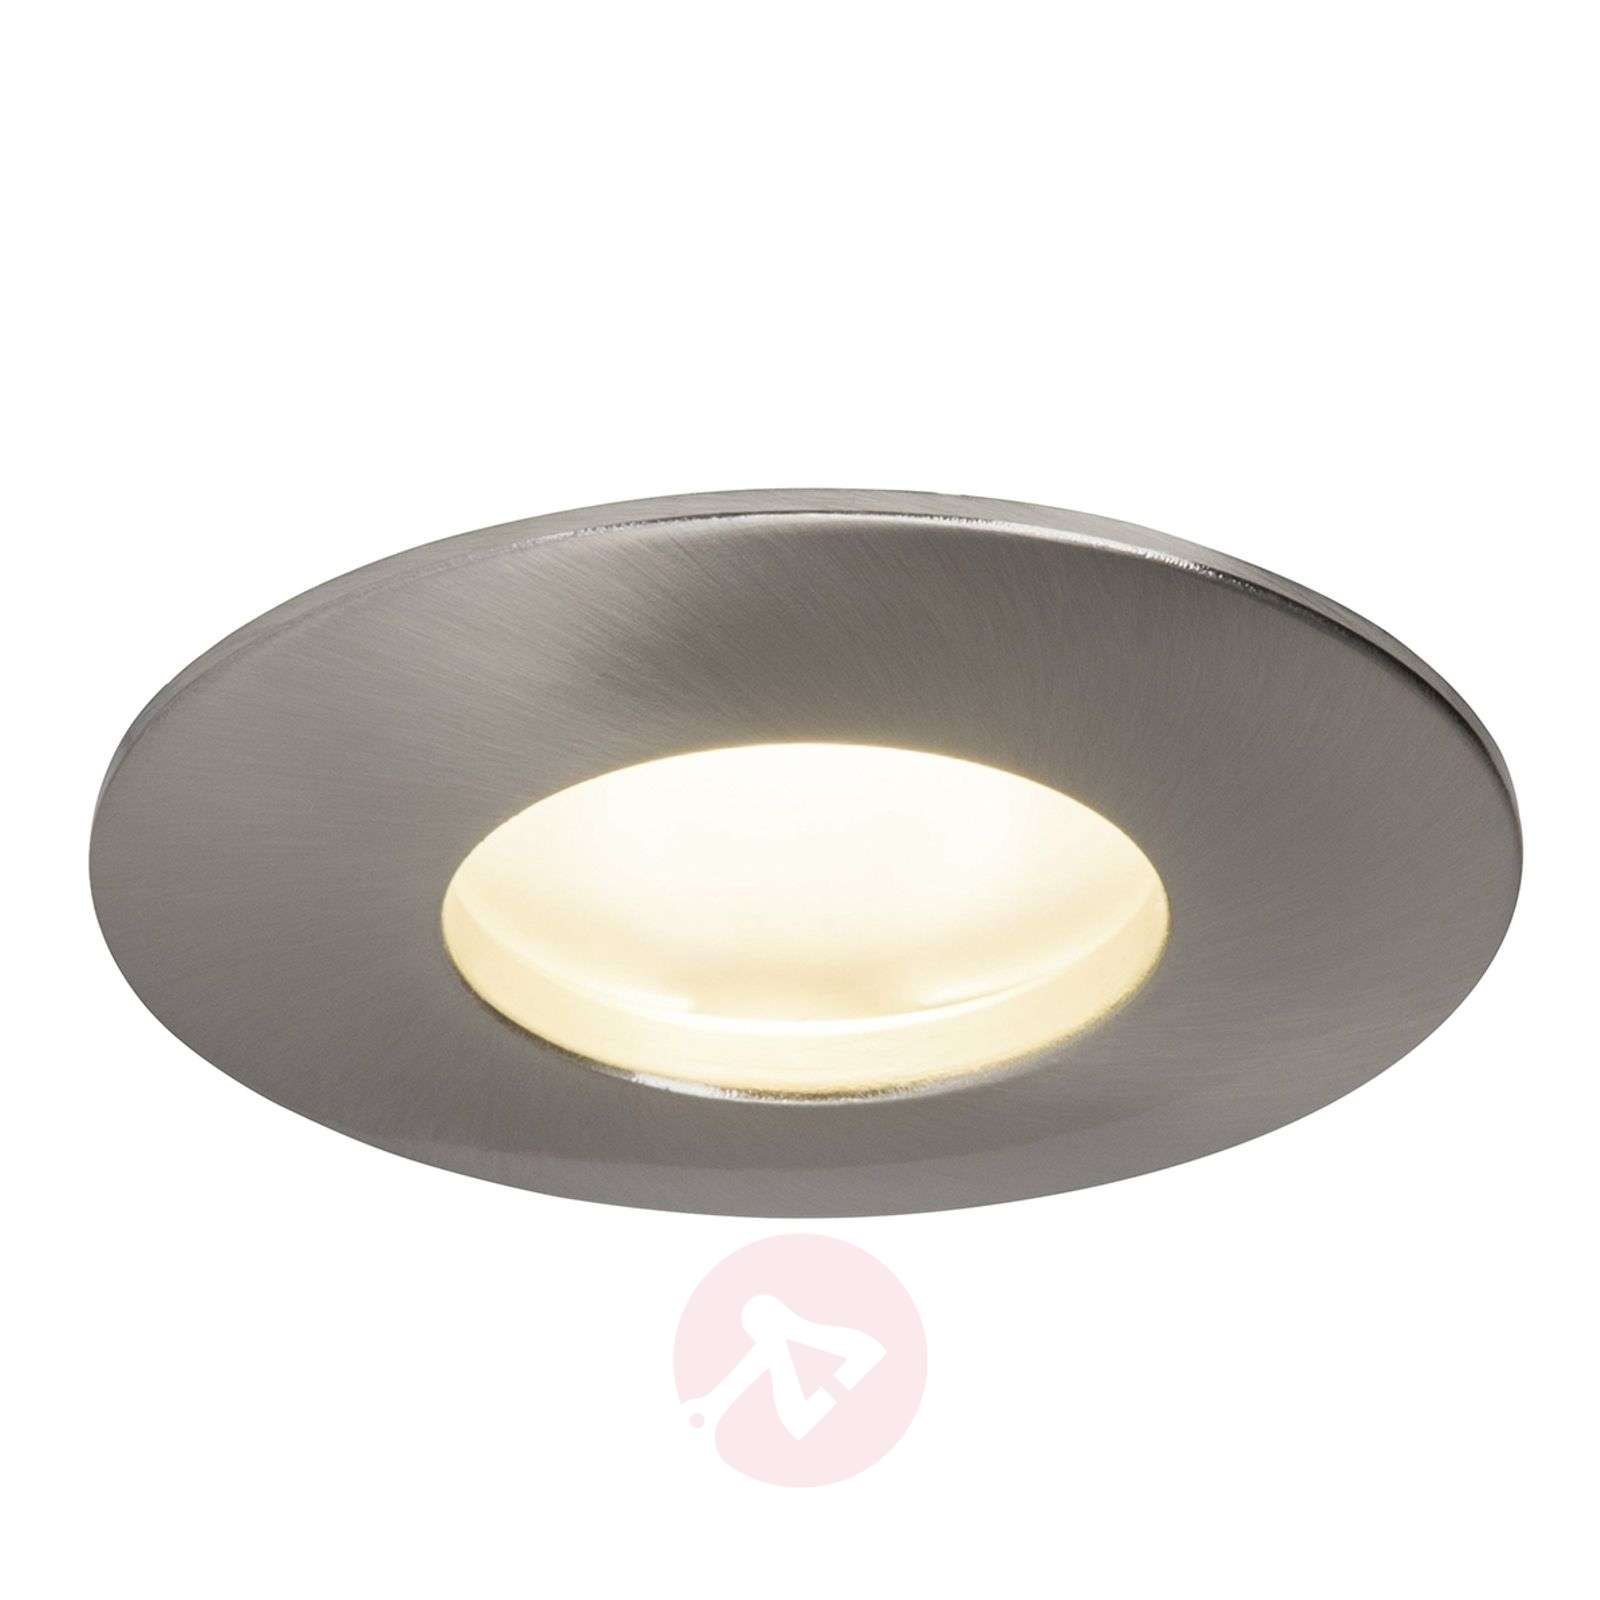 Plafoniera Led Incasso Tonda : Acquista plafoniera led da incasso verano tonda ip44 lampade.it